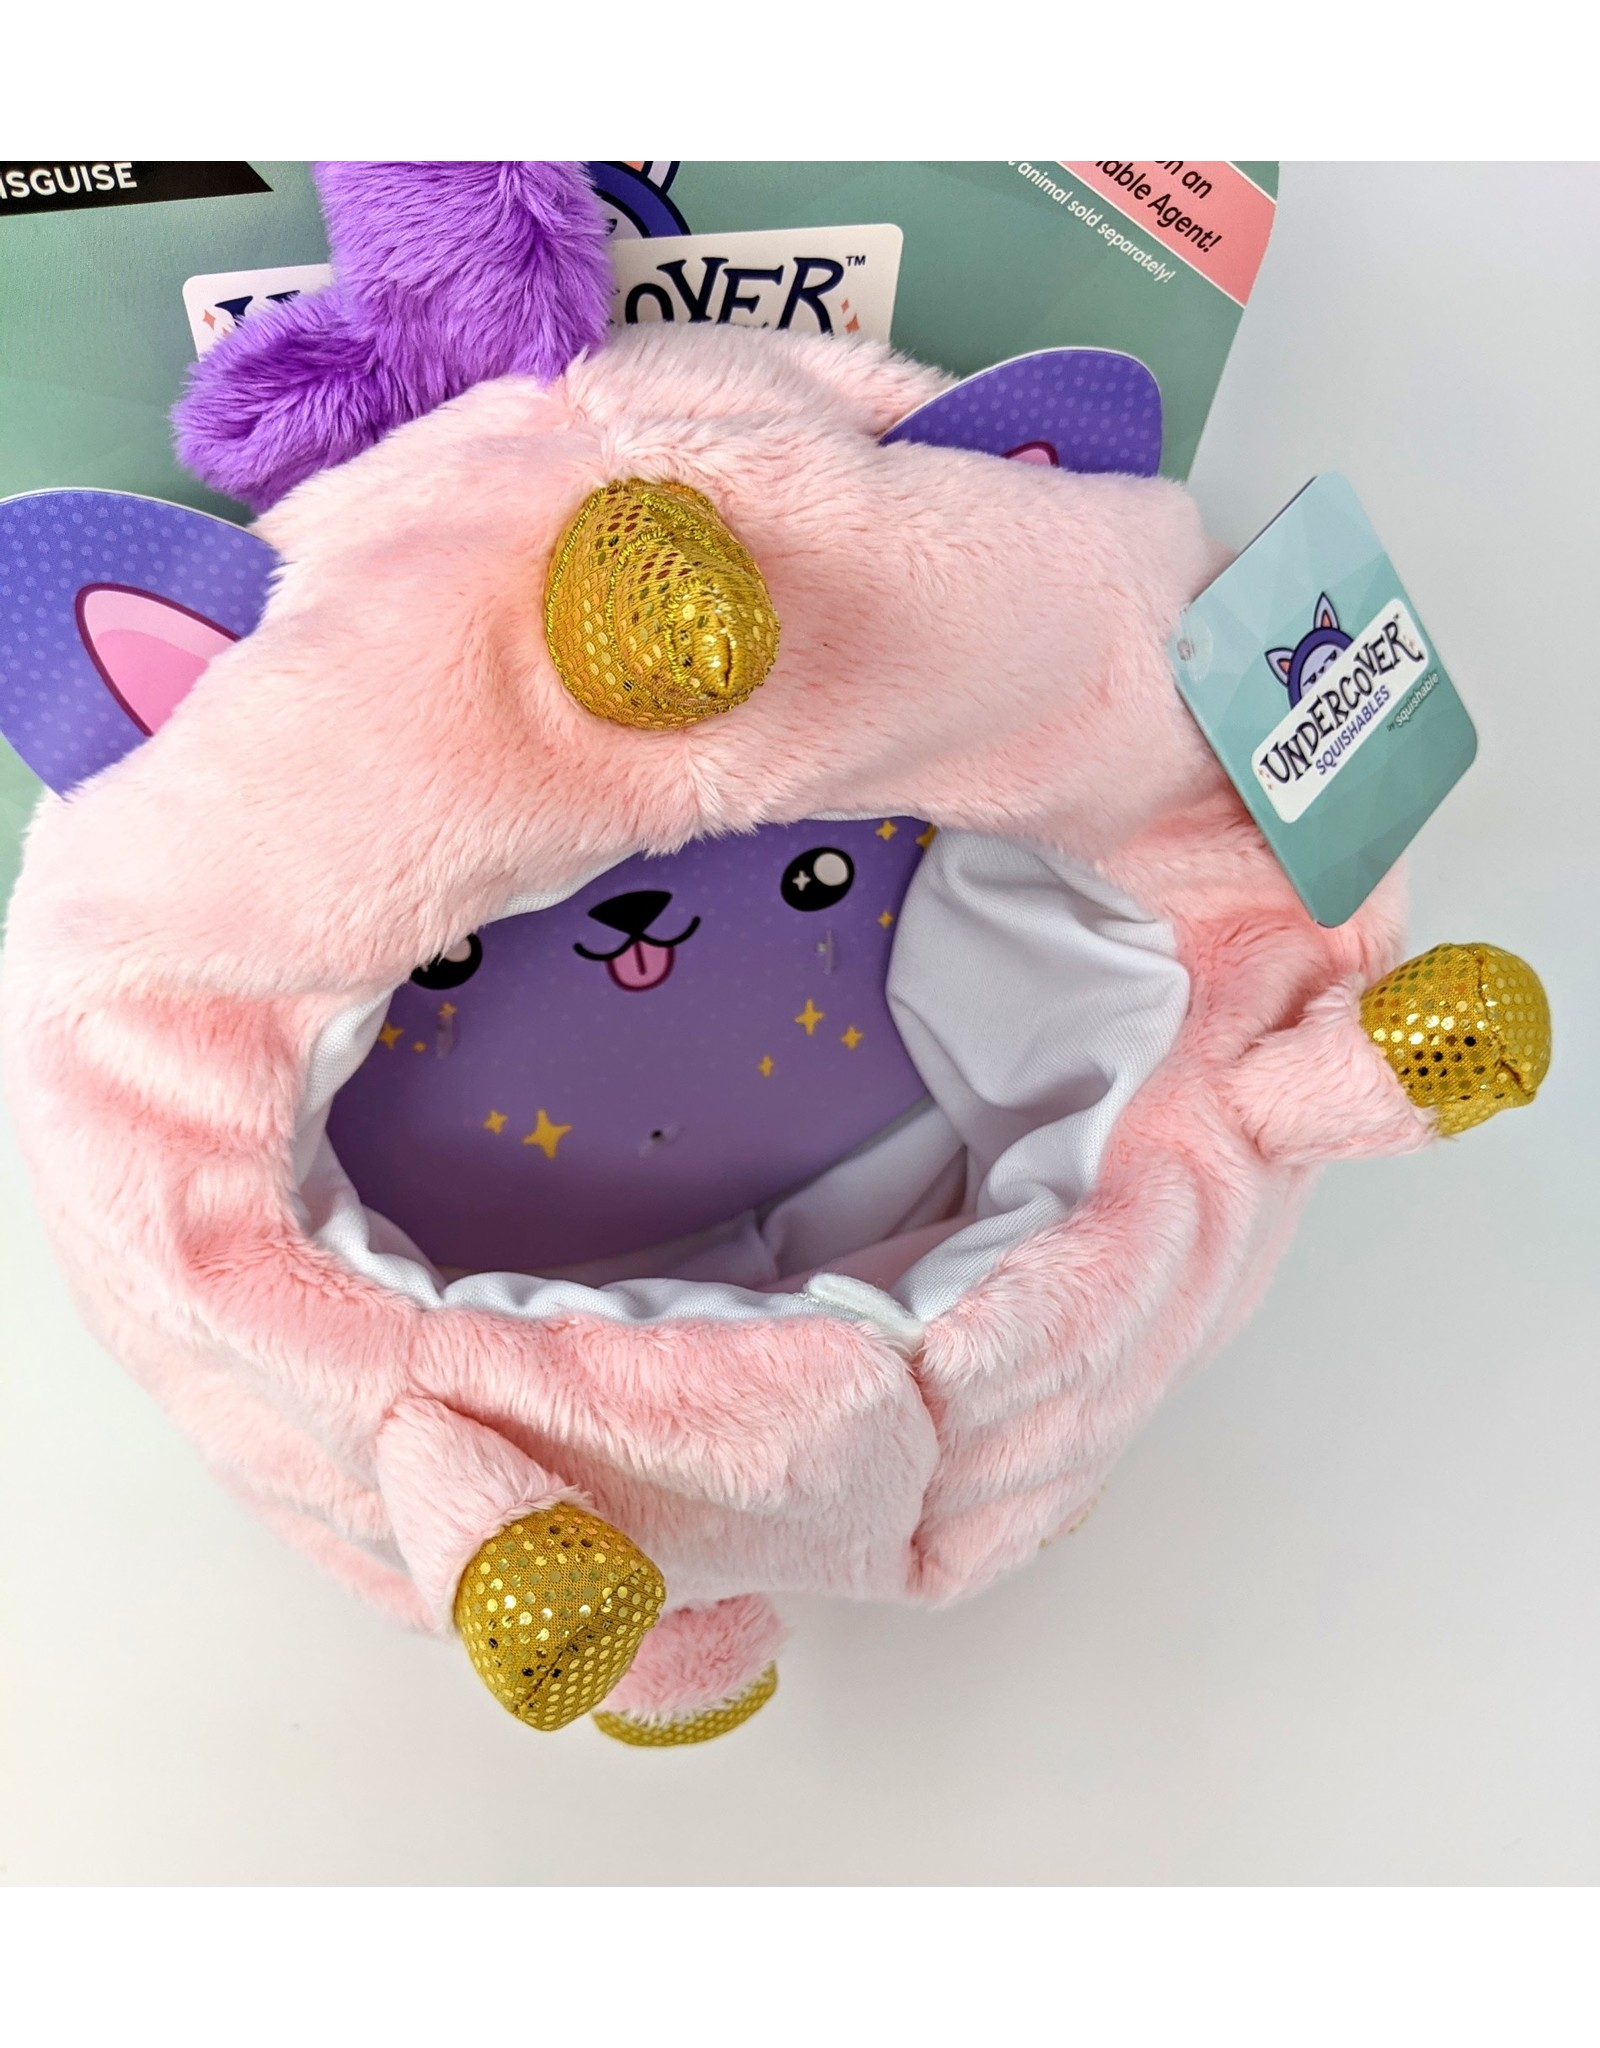 Squishable Undercover Disguise - Pink Unicorn